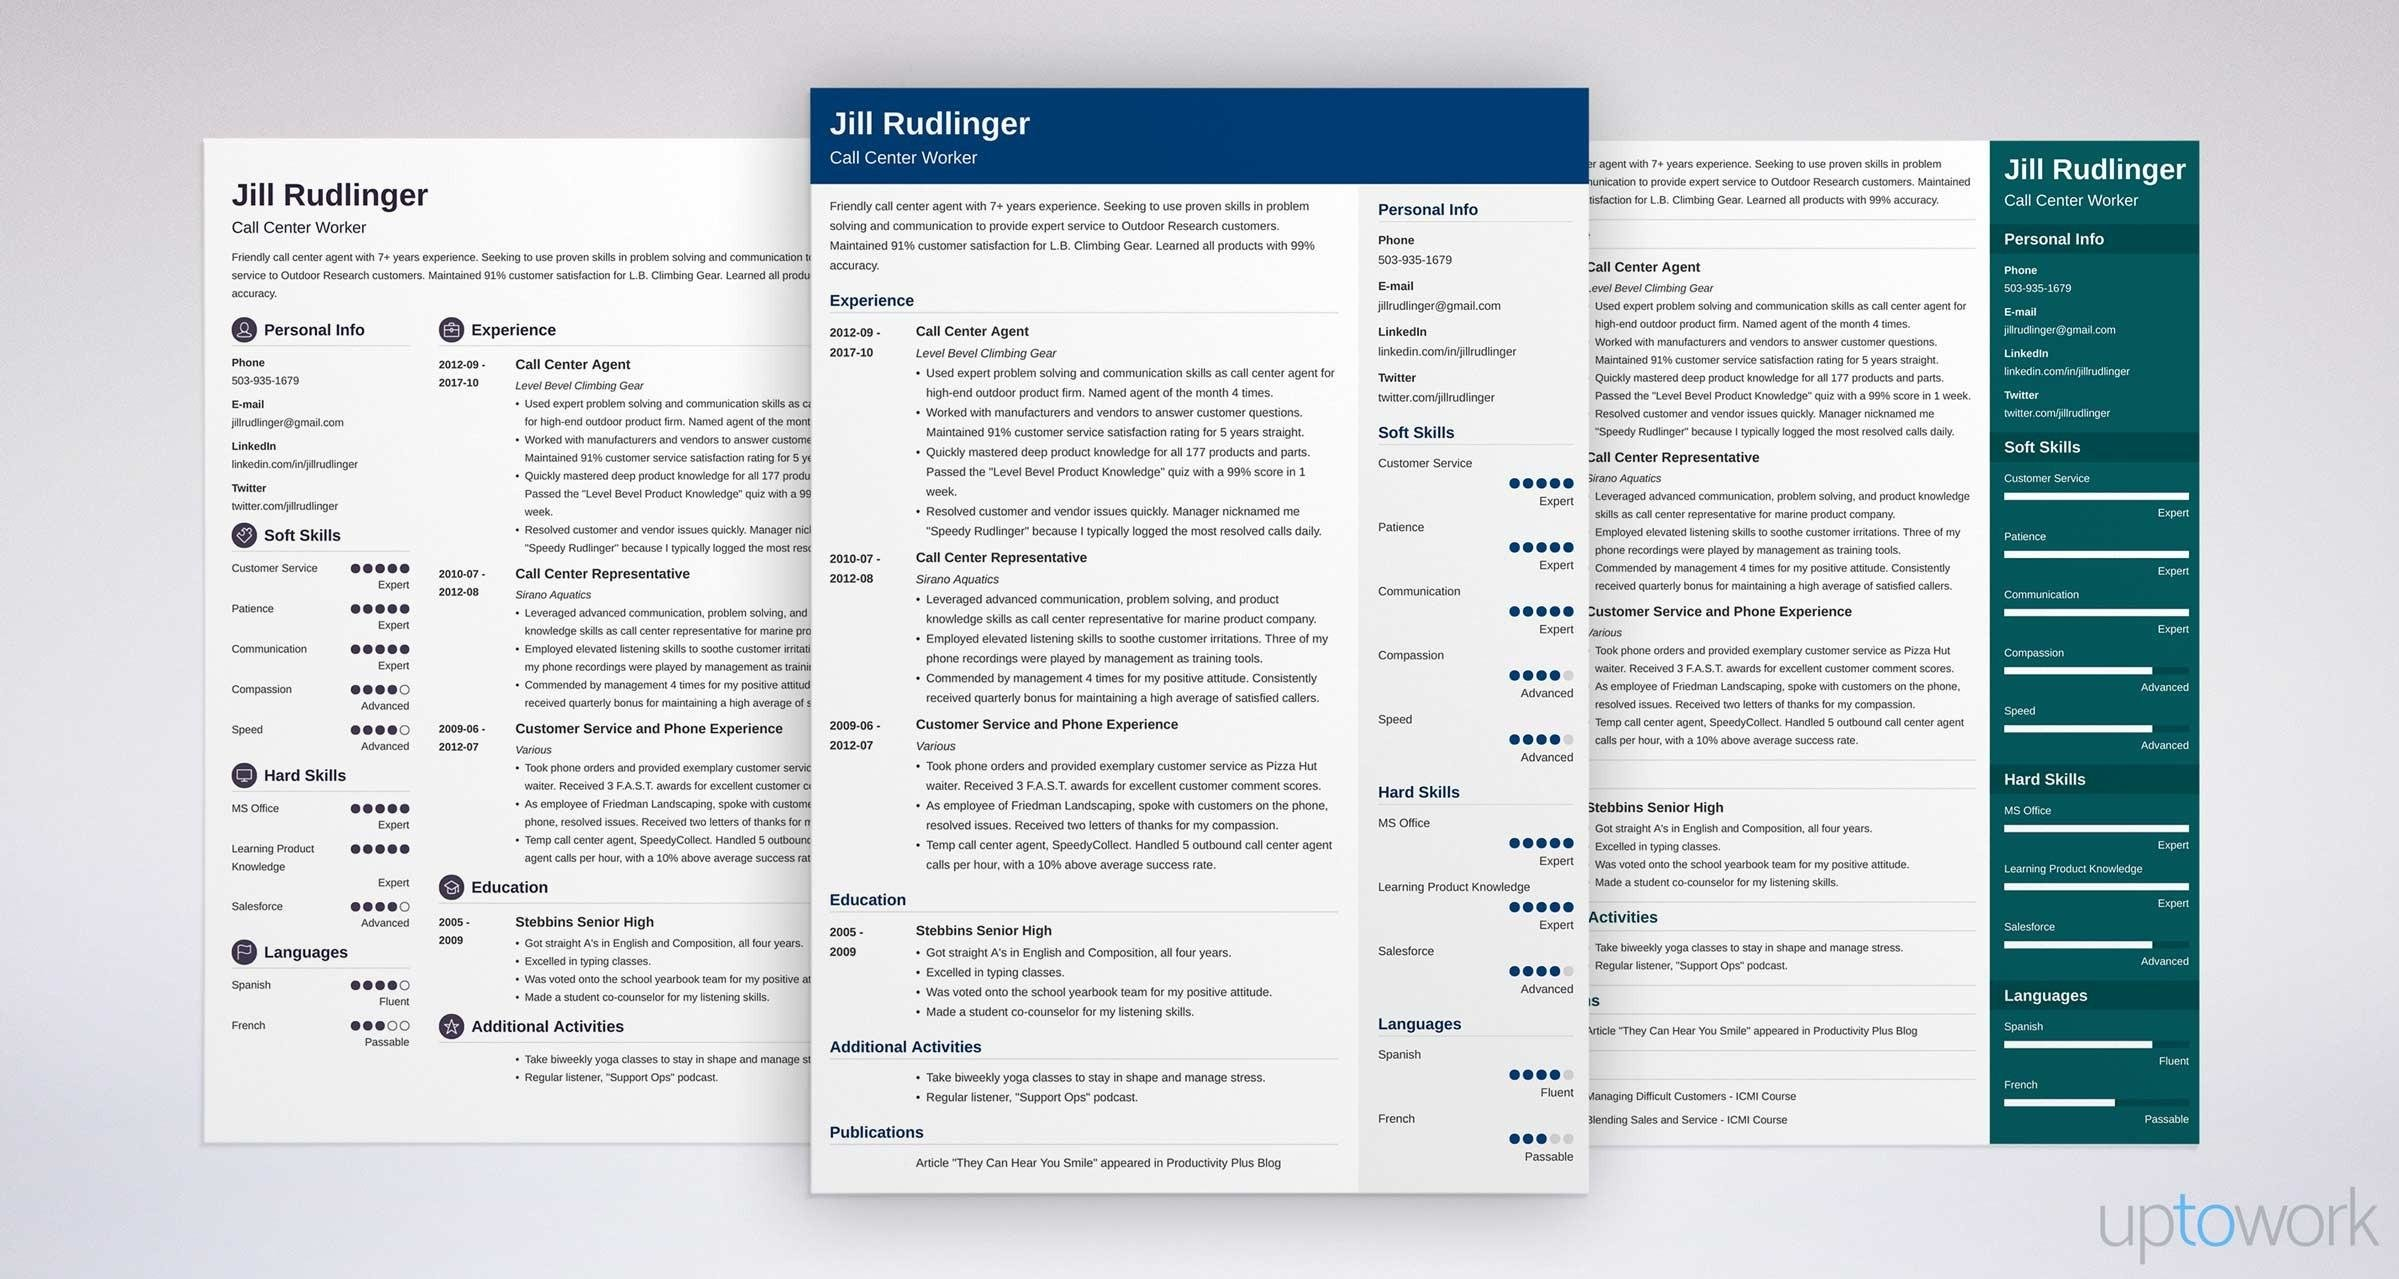 Call Center Resume: Sample and Complete Guide [+20 Examples]